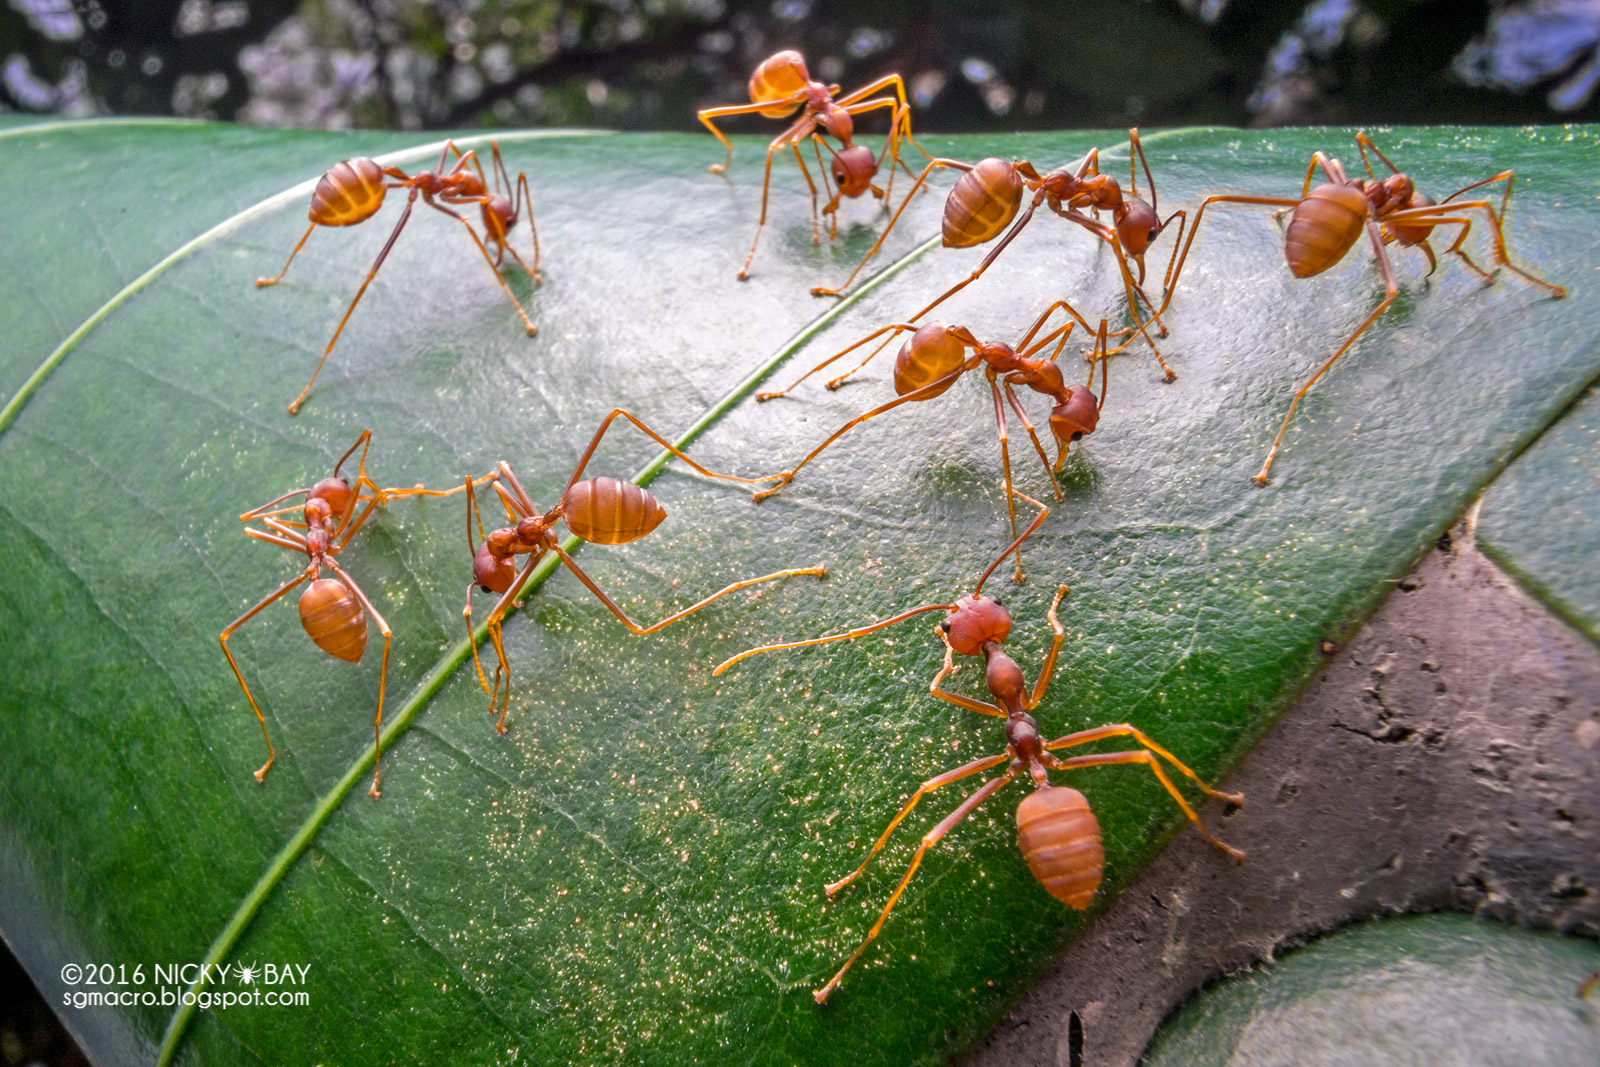 Red weaver ants (Oecophylla sp.) - DSC03850